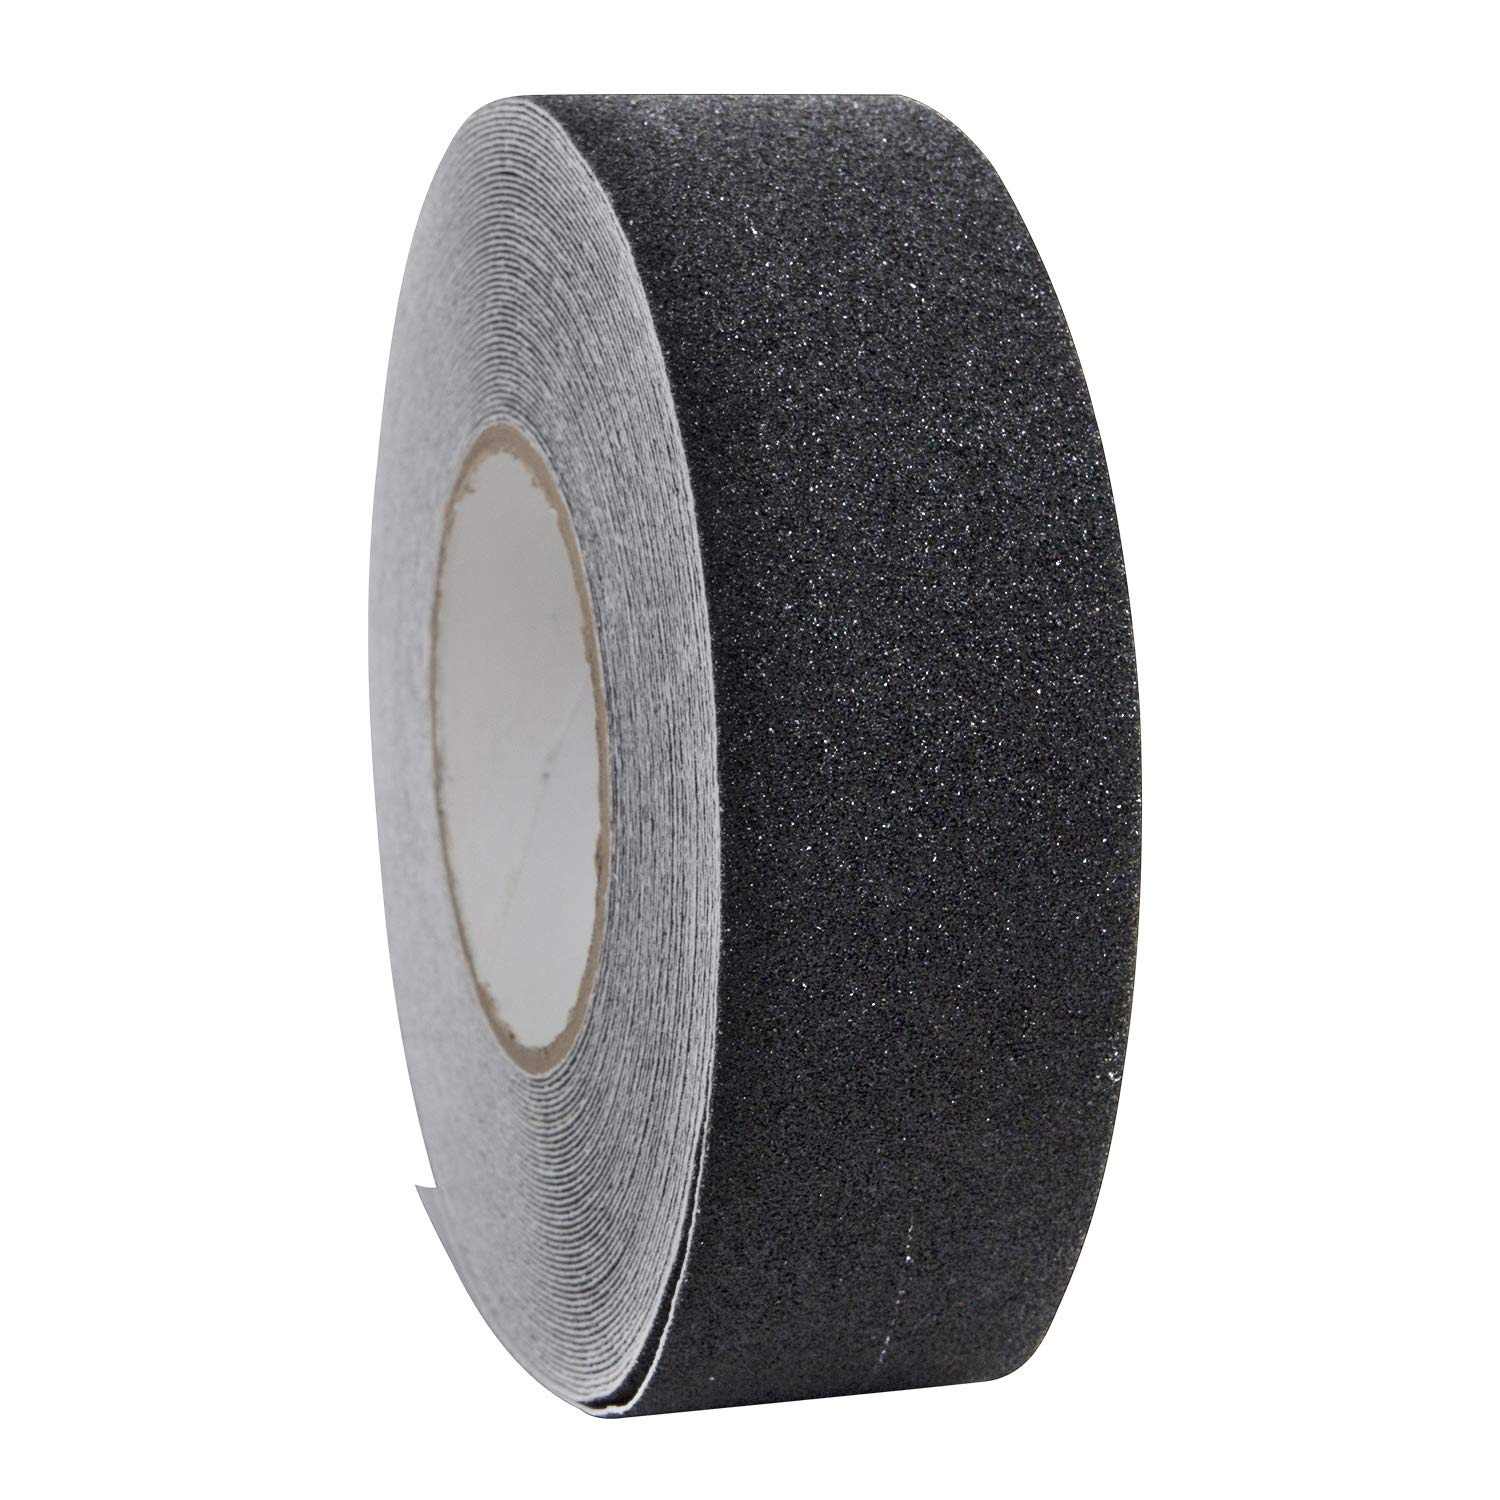 Houseables Anti Slip Tape Grip Tapes Black 80 Grit 60' x 2 Treads Non Slip Safety High Friction Strong Abrasive for Boats Steps Stairs Ramps Ladders Forklifts Indoor Outdoor